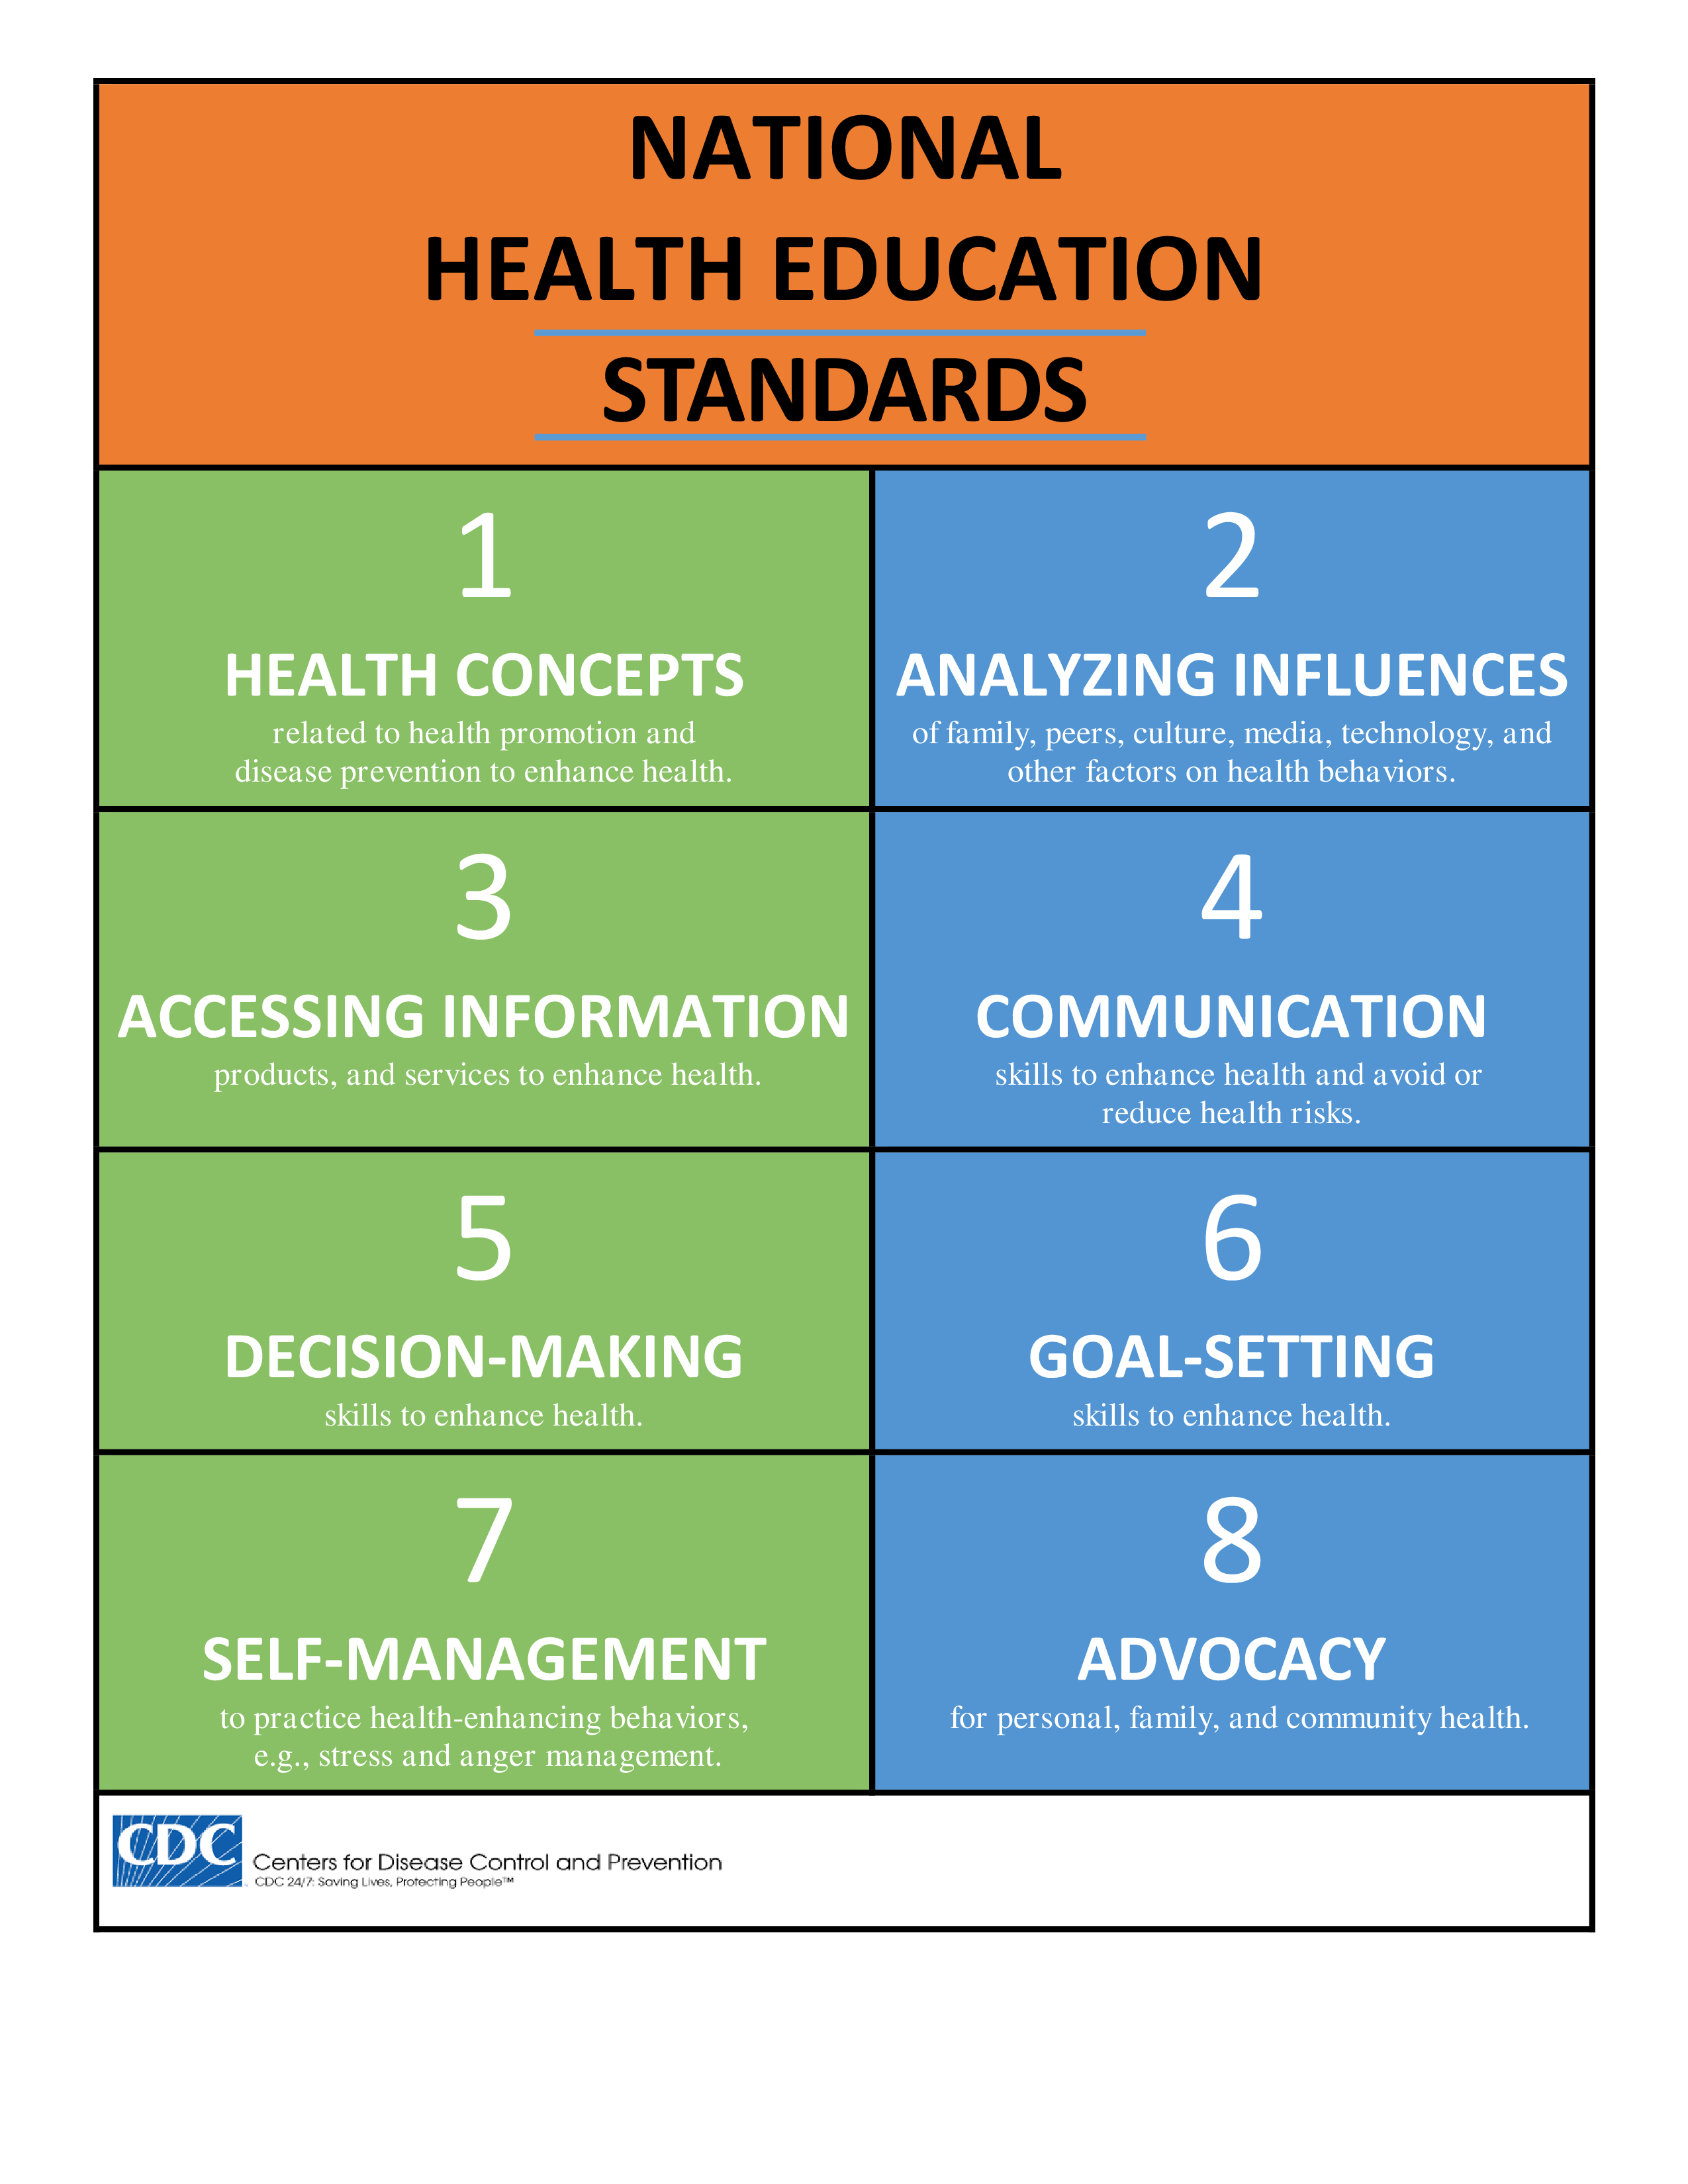 Here are the CDC's National Health Education Standards for